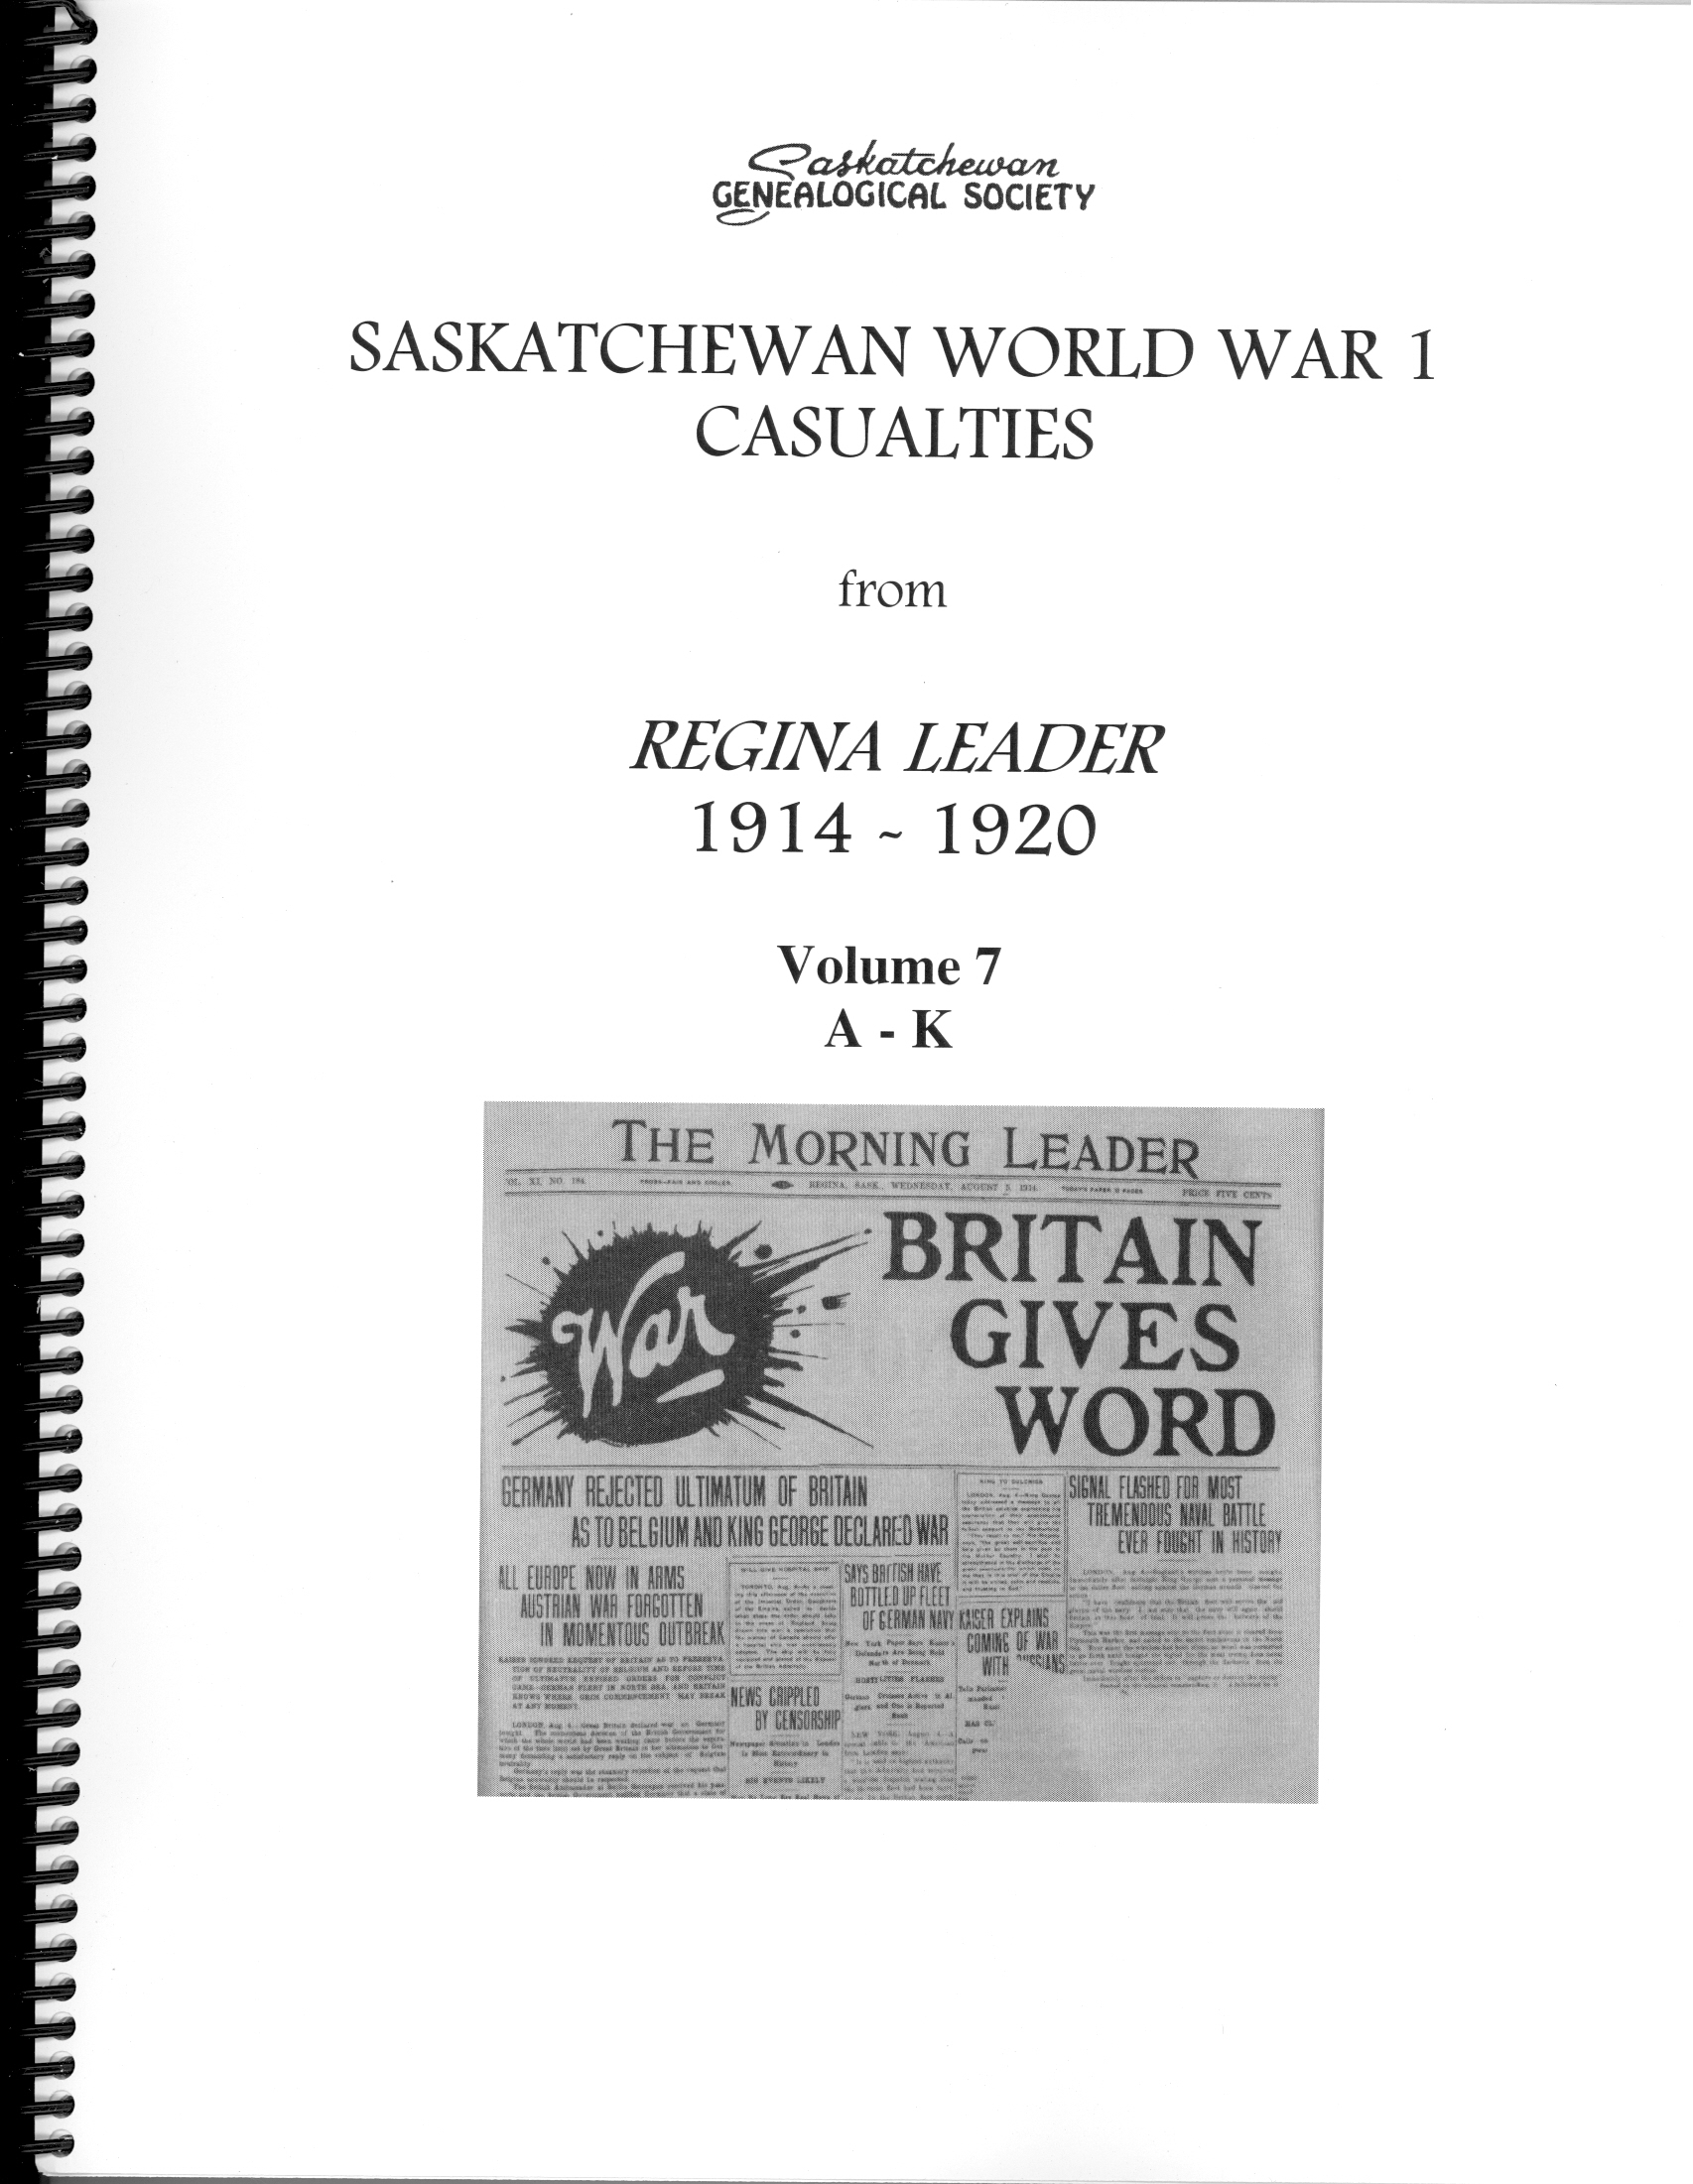 Sgs publications saskatchewan genealogical society abstracts for casualties of world war i were taken from the morning leader online edition aiddatafo Choice Image